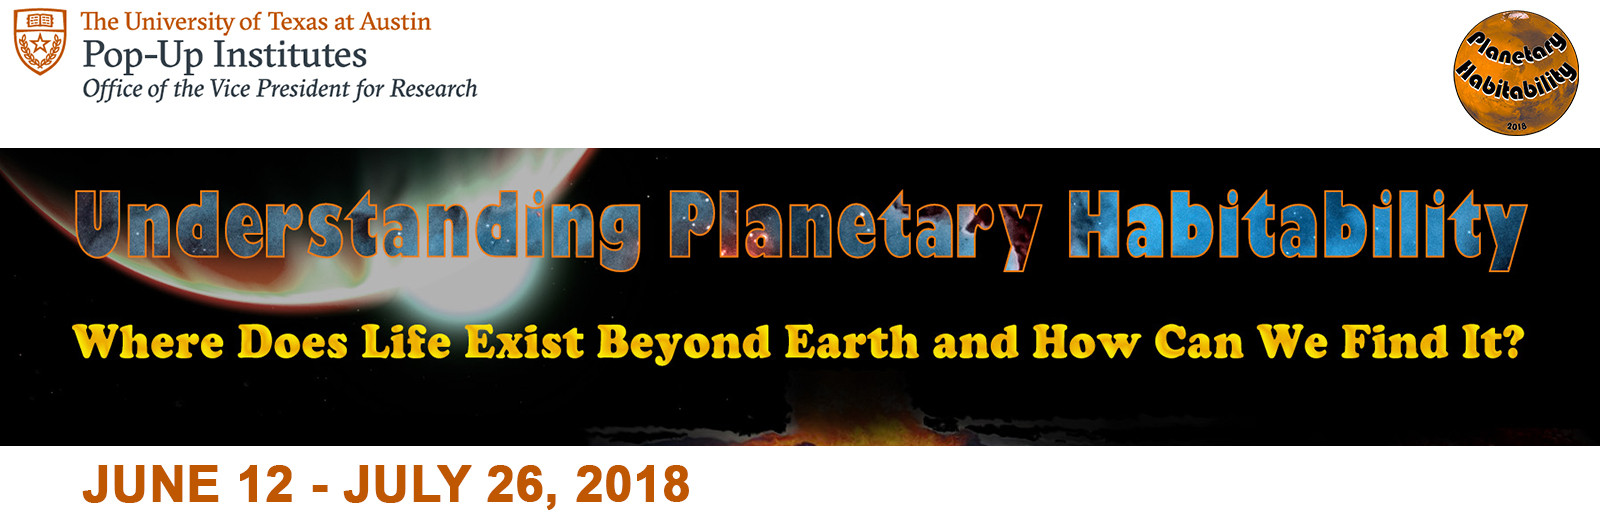 Utah Department Of Administrative Services Wonderful Ut Pop Up Institute Planetary Habitability